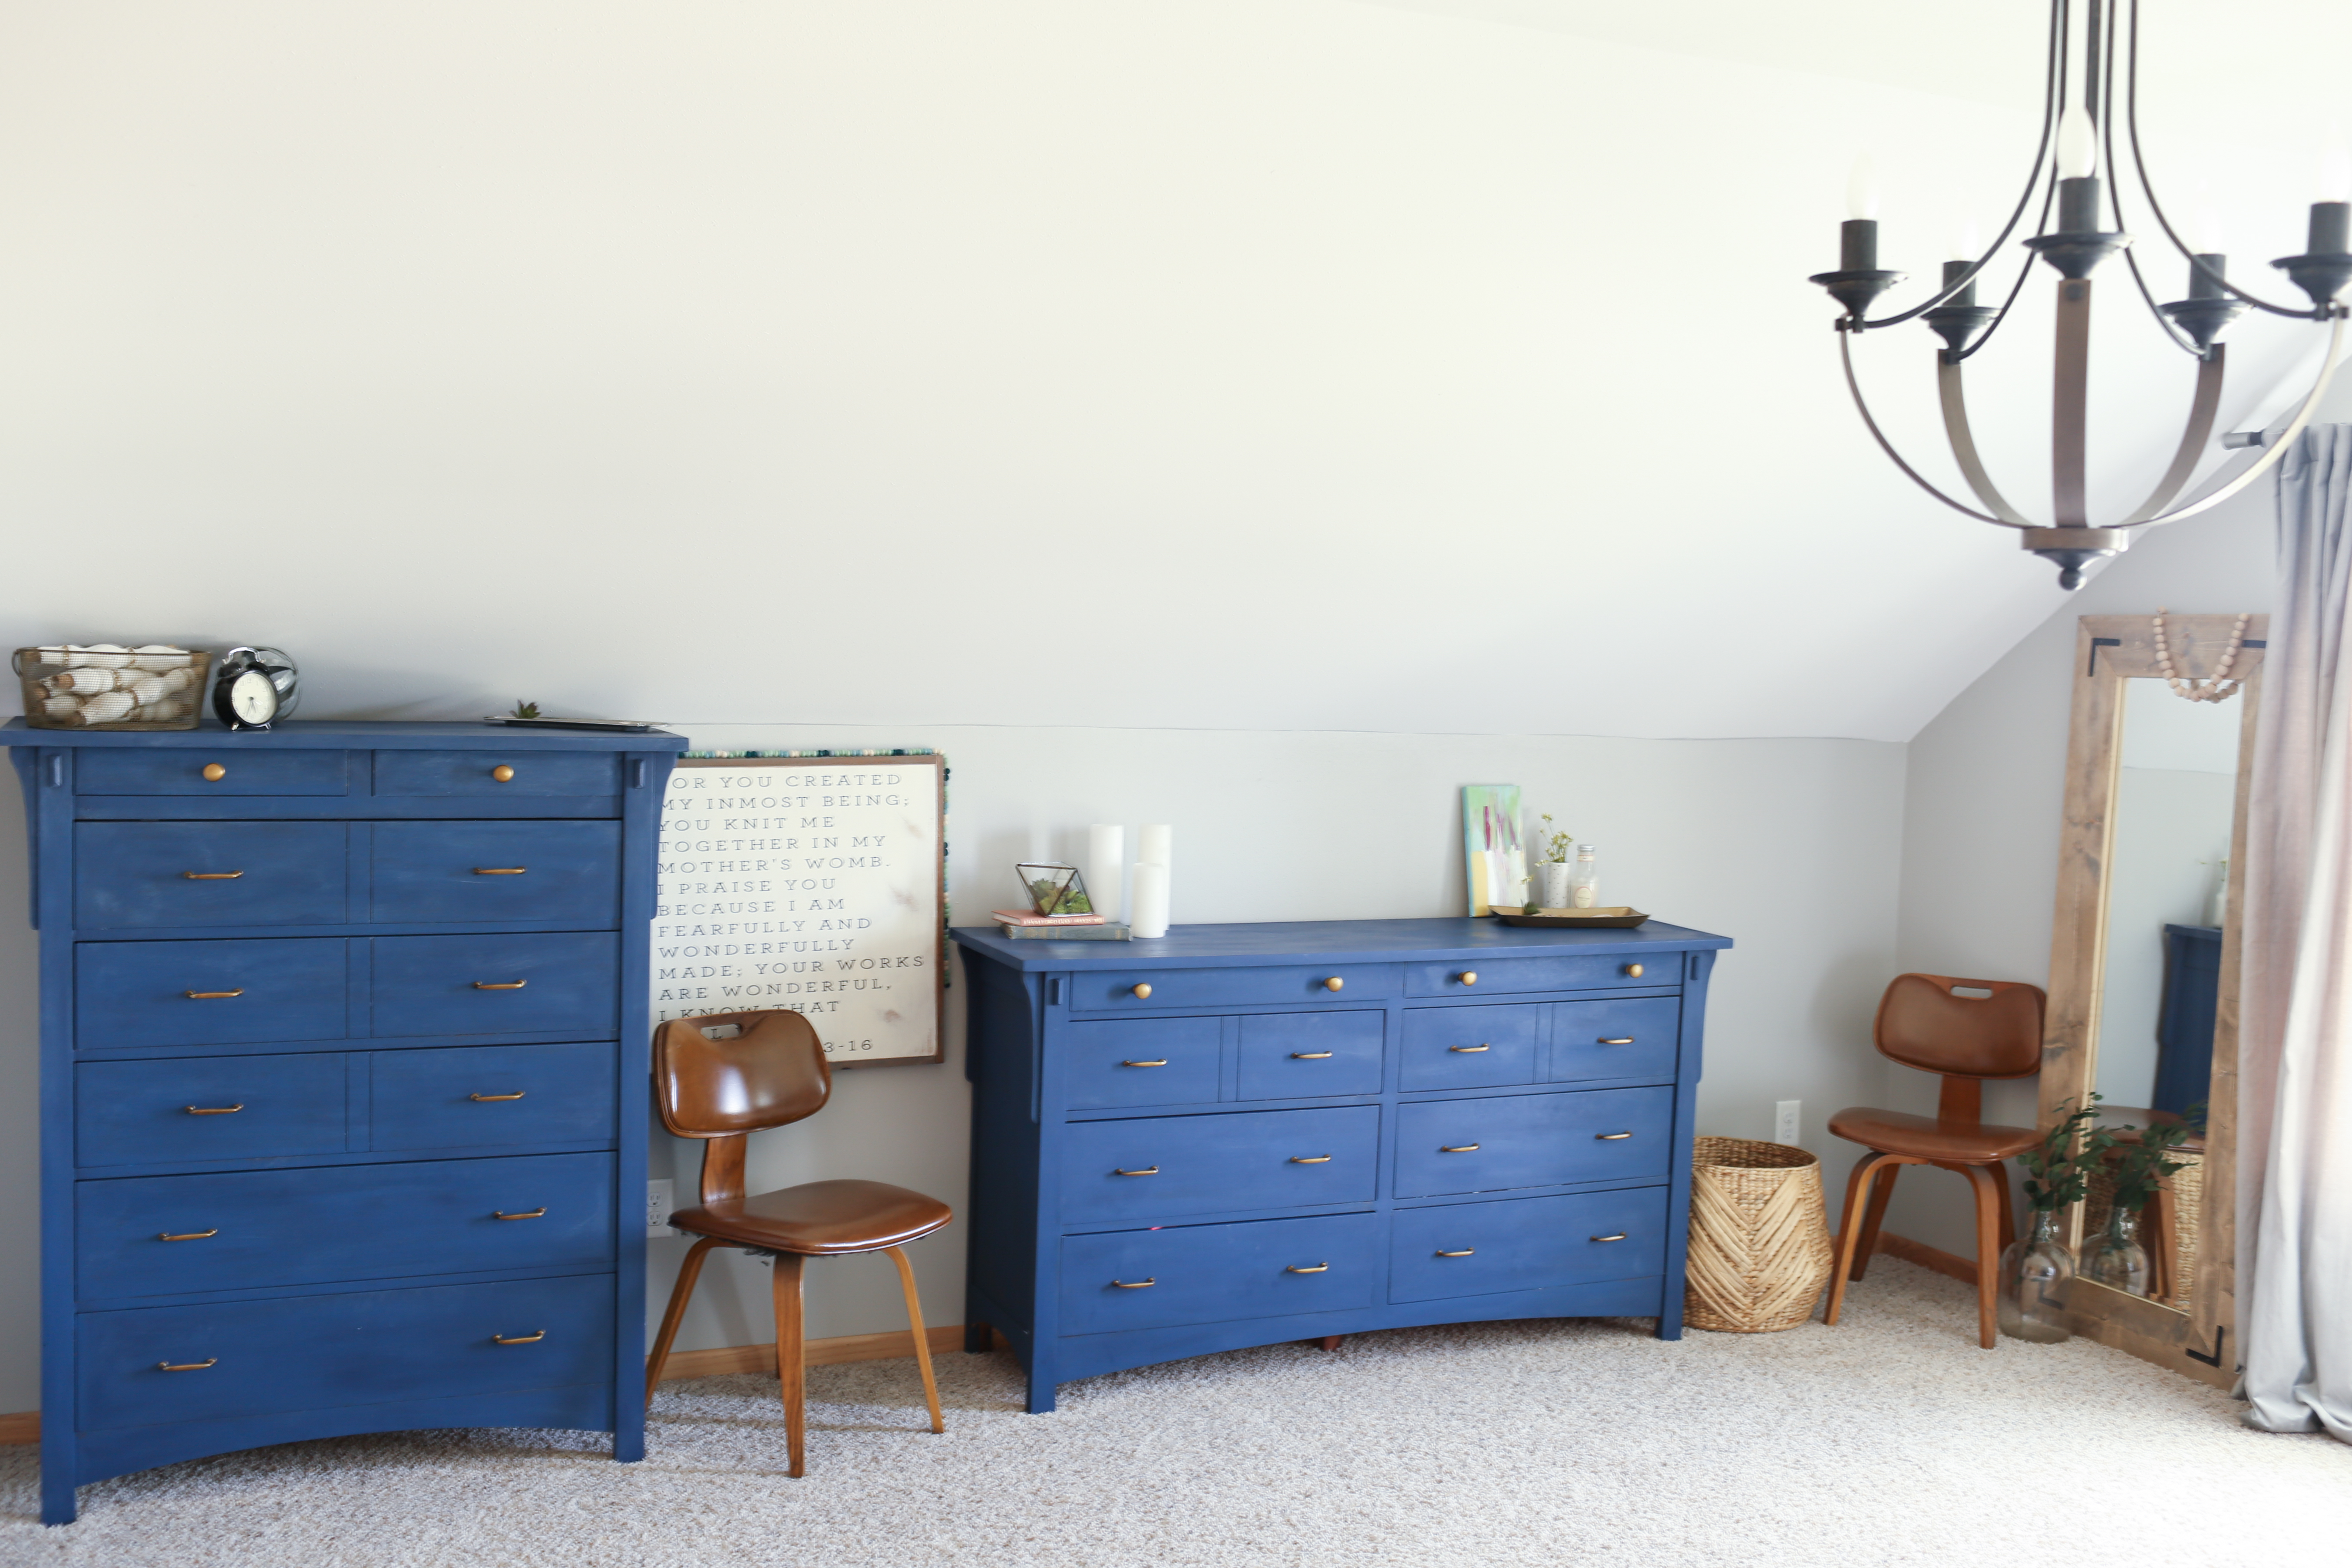 Gray And Navy Blue Bedroom Gray and navy blue master bedroom. Complete with gold accents and DIY  projects. The